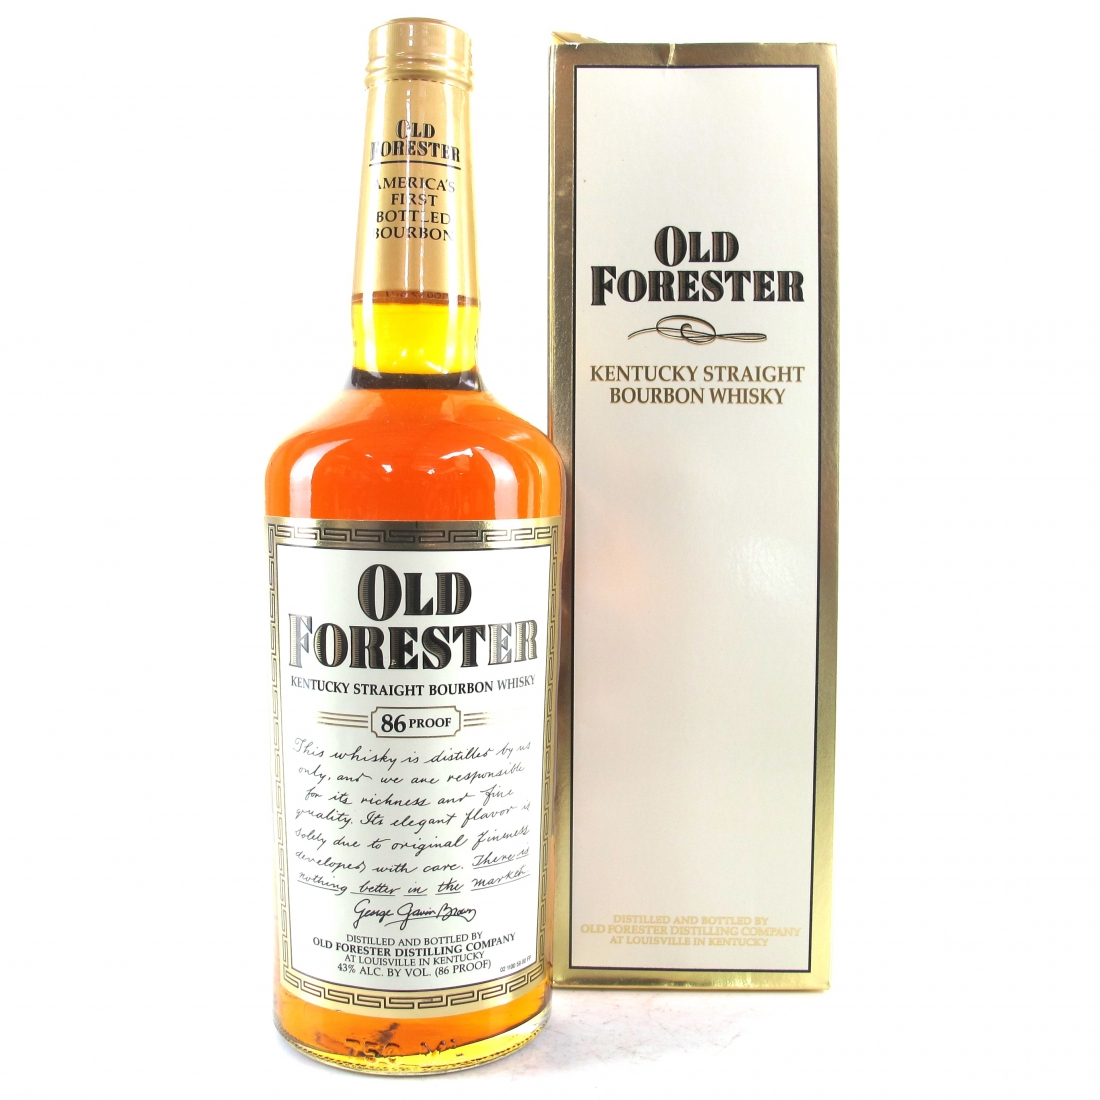 Old Forester 4 Year Old Kentucky Straight Bourbon